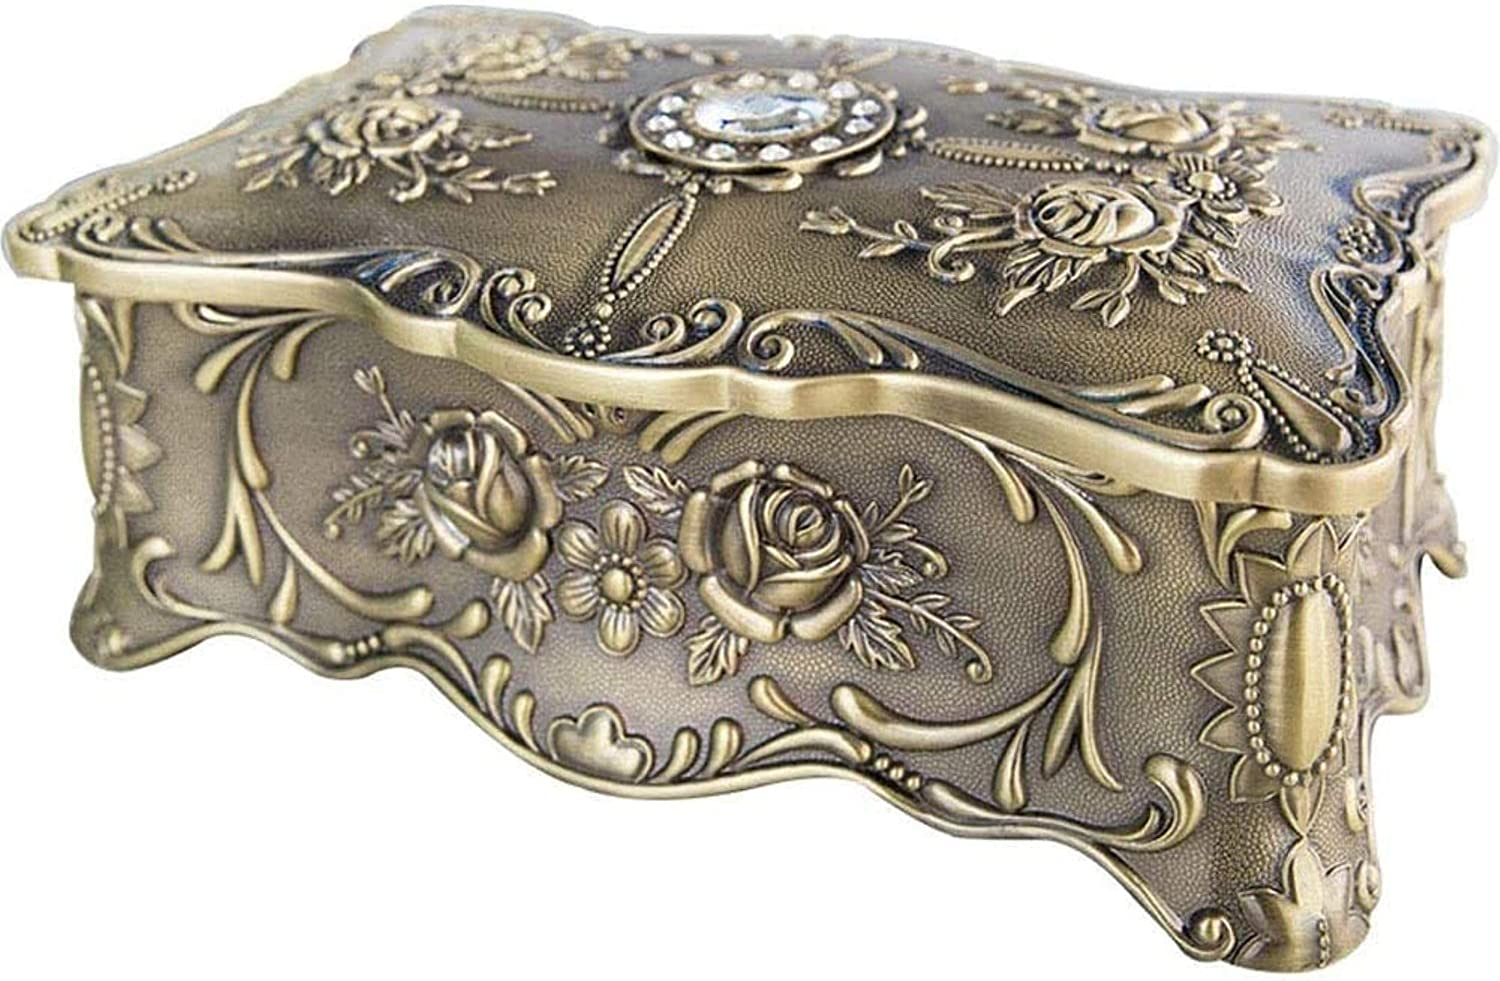 ZXCVBNN European Style Genuine Creative Double Layer Jew Jewellery Chest 67% OFF of fixed price